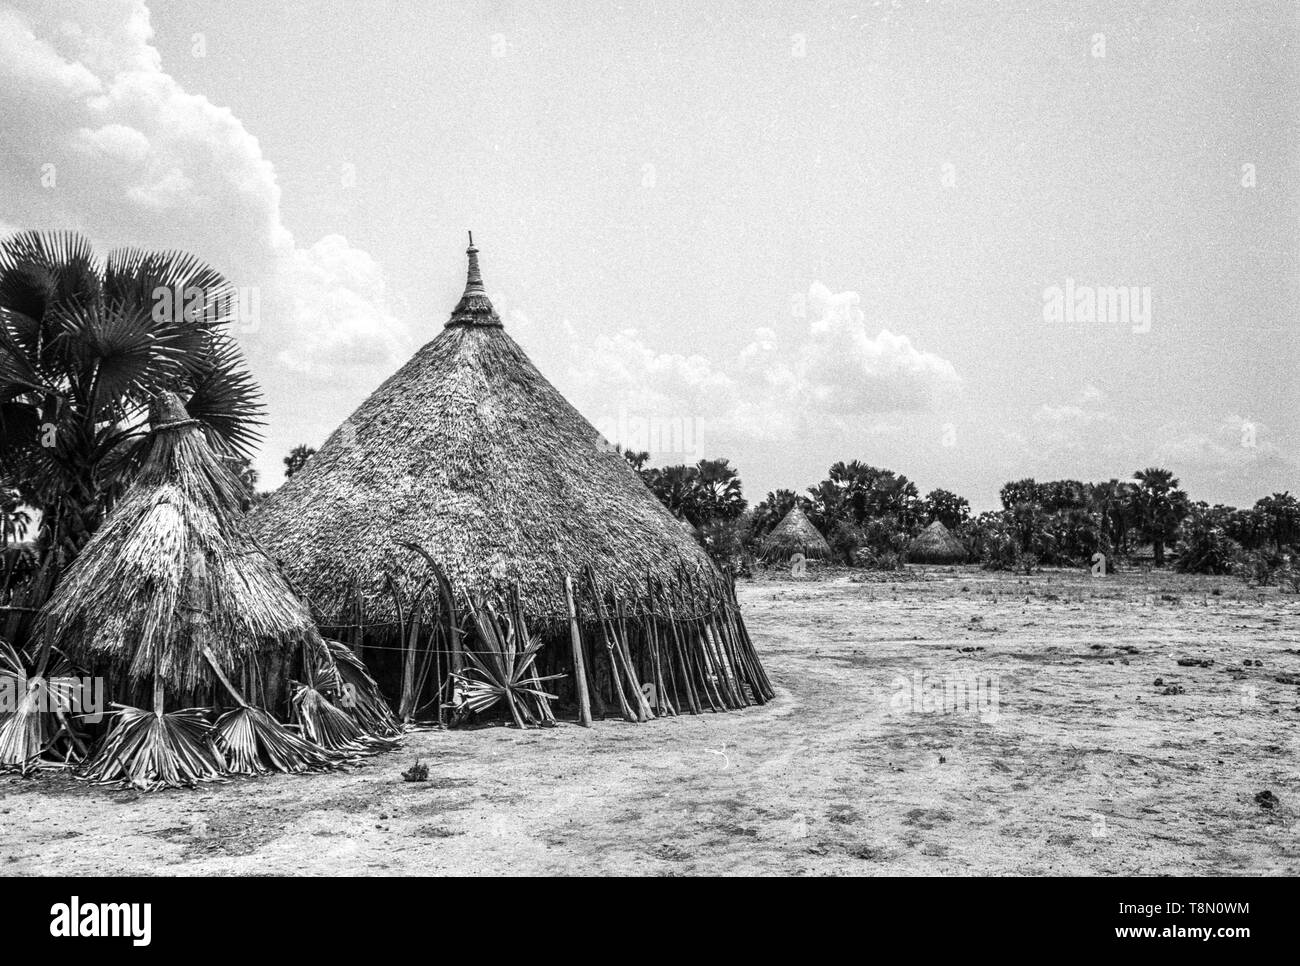 Neur Tribe with their smooth thatched huts - Stock Image